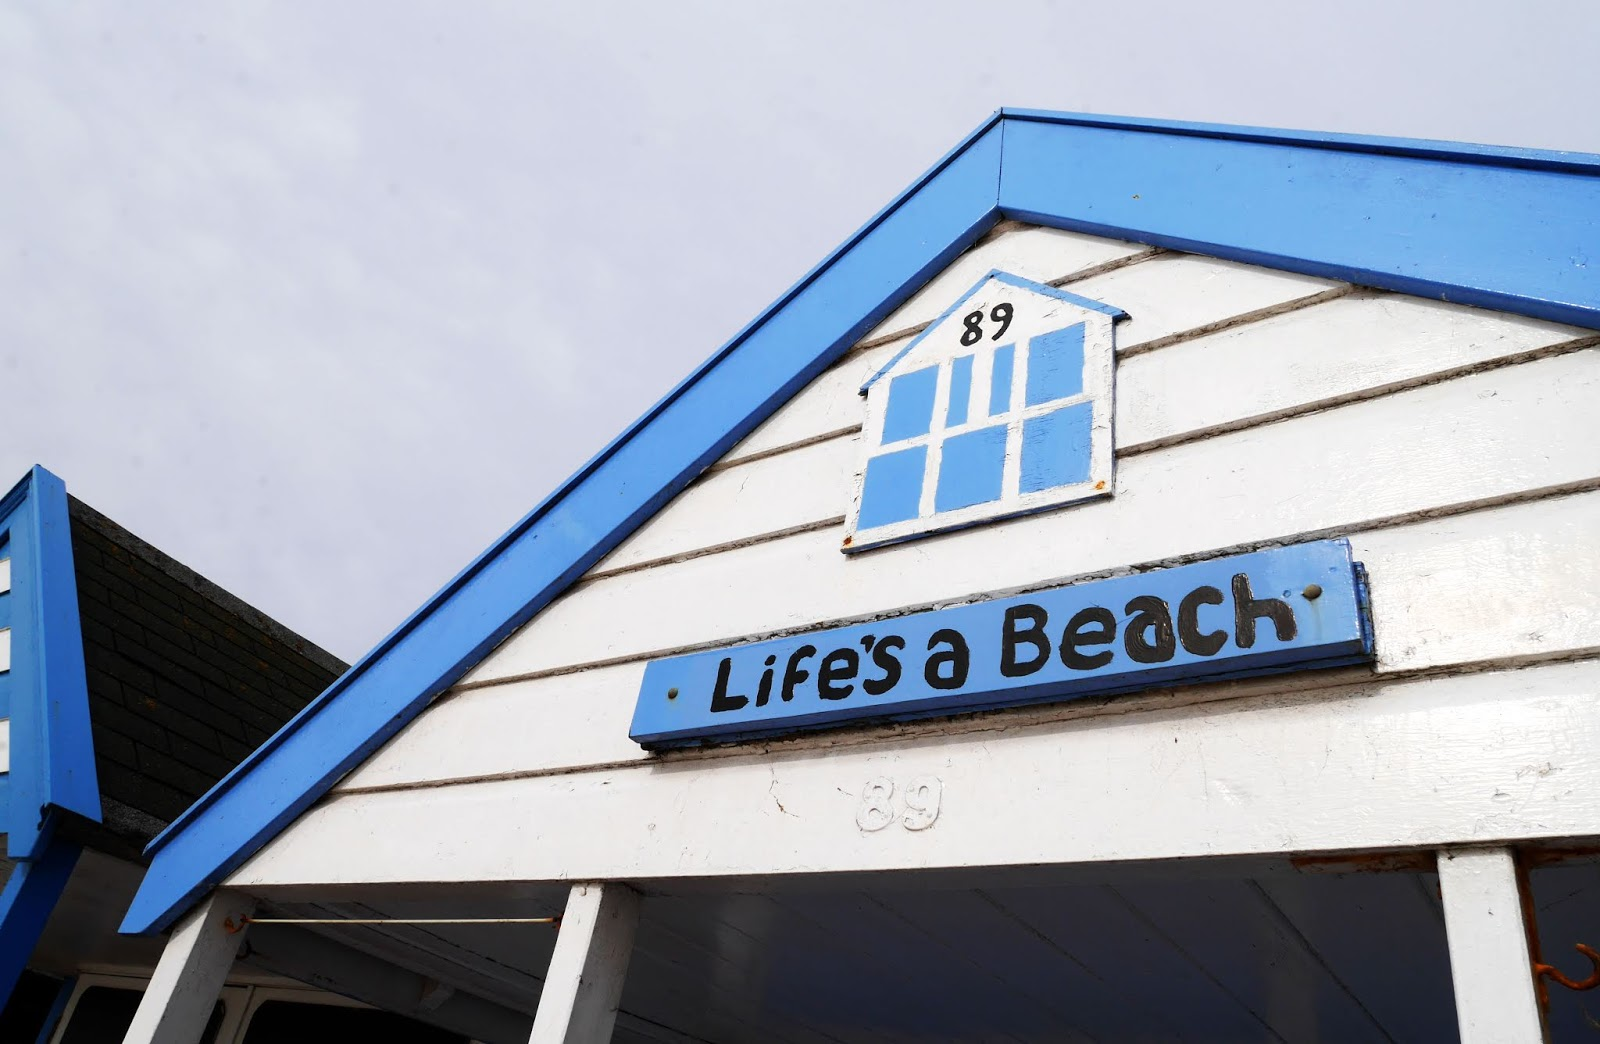 'Life's a Beach' beach hut in Southwold, Suffolk